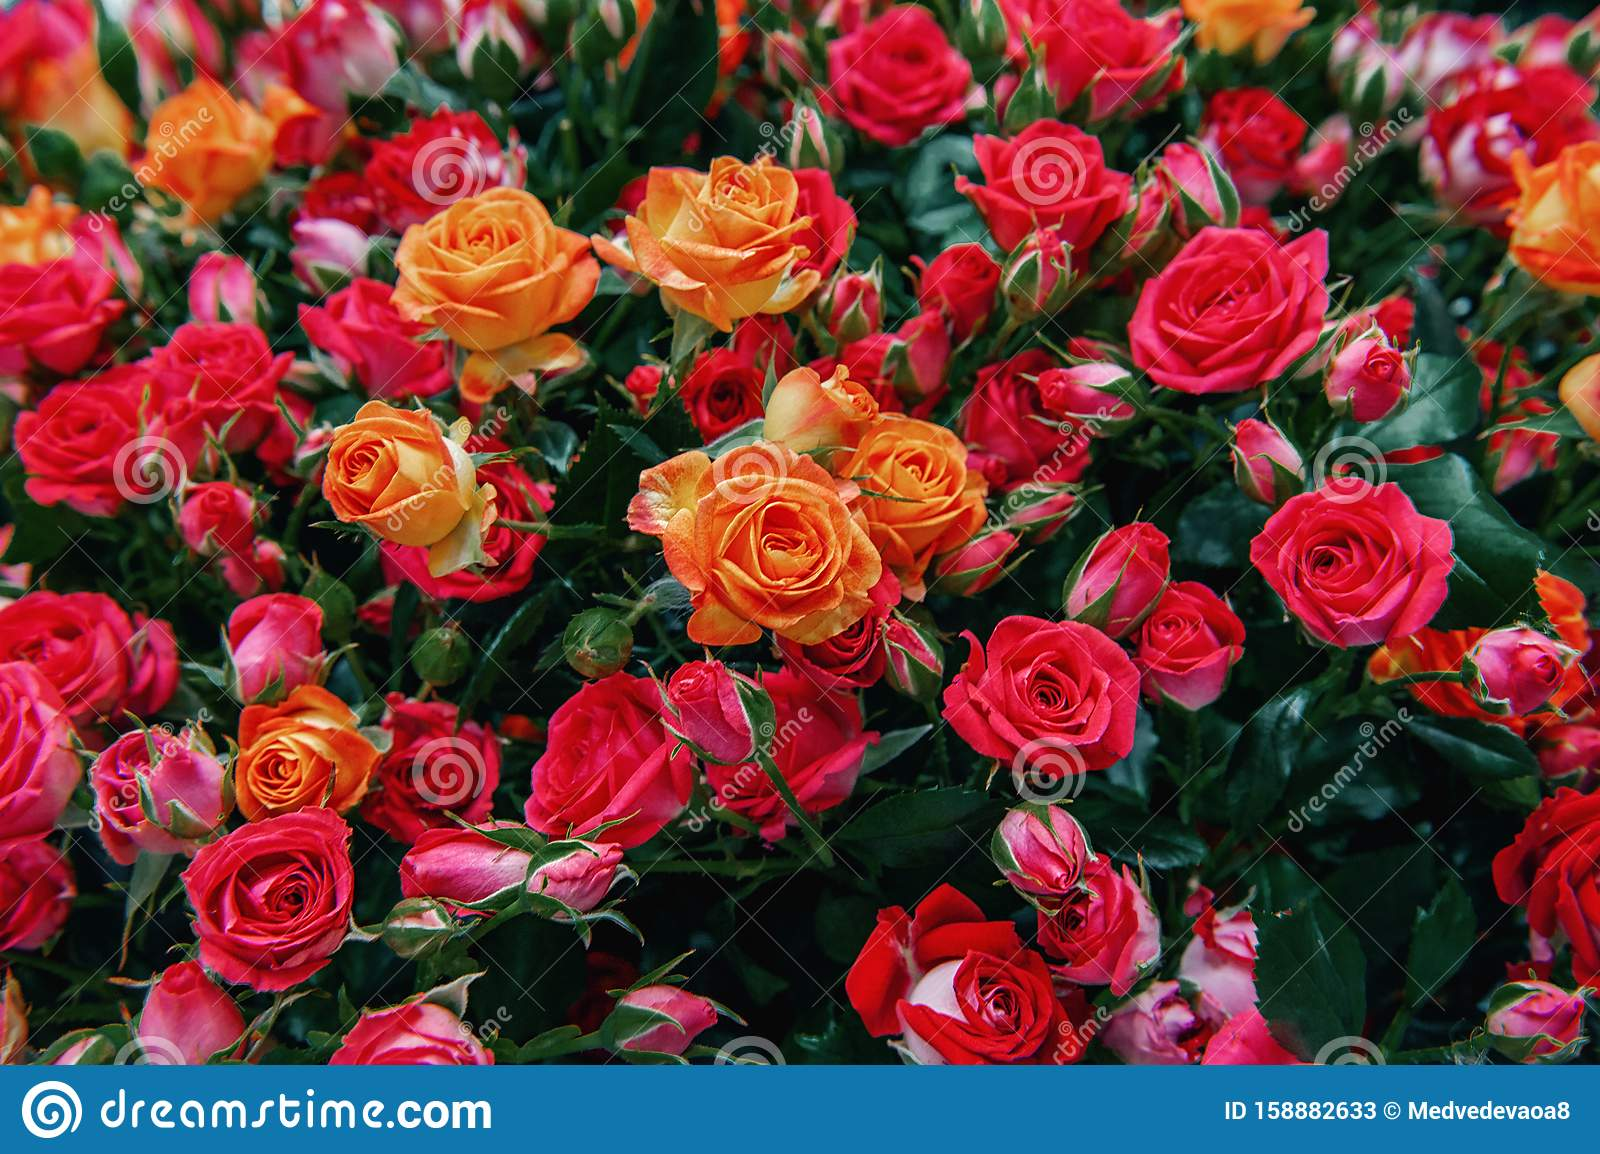 A Bouquet Of Beautiful Orange Roses Is Sold In The Market As A Birthday Gift Or Mother S Day Closeup Modern Selection Of Pink Stock Image Image Of Fresh Colorful 158882633